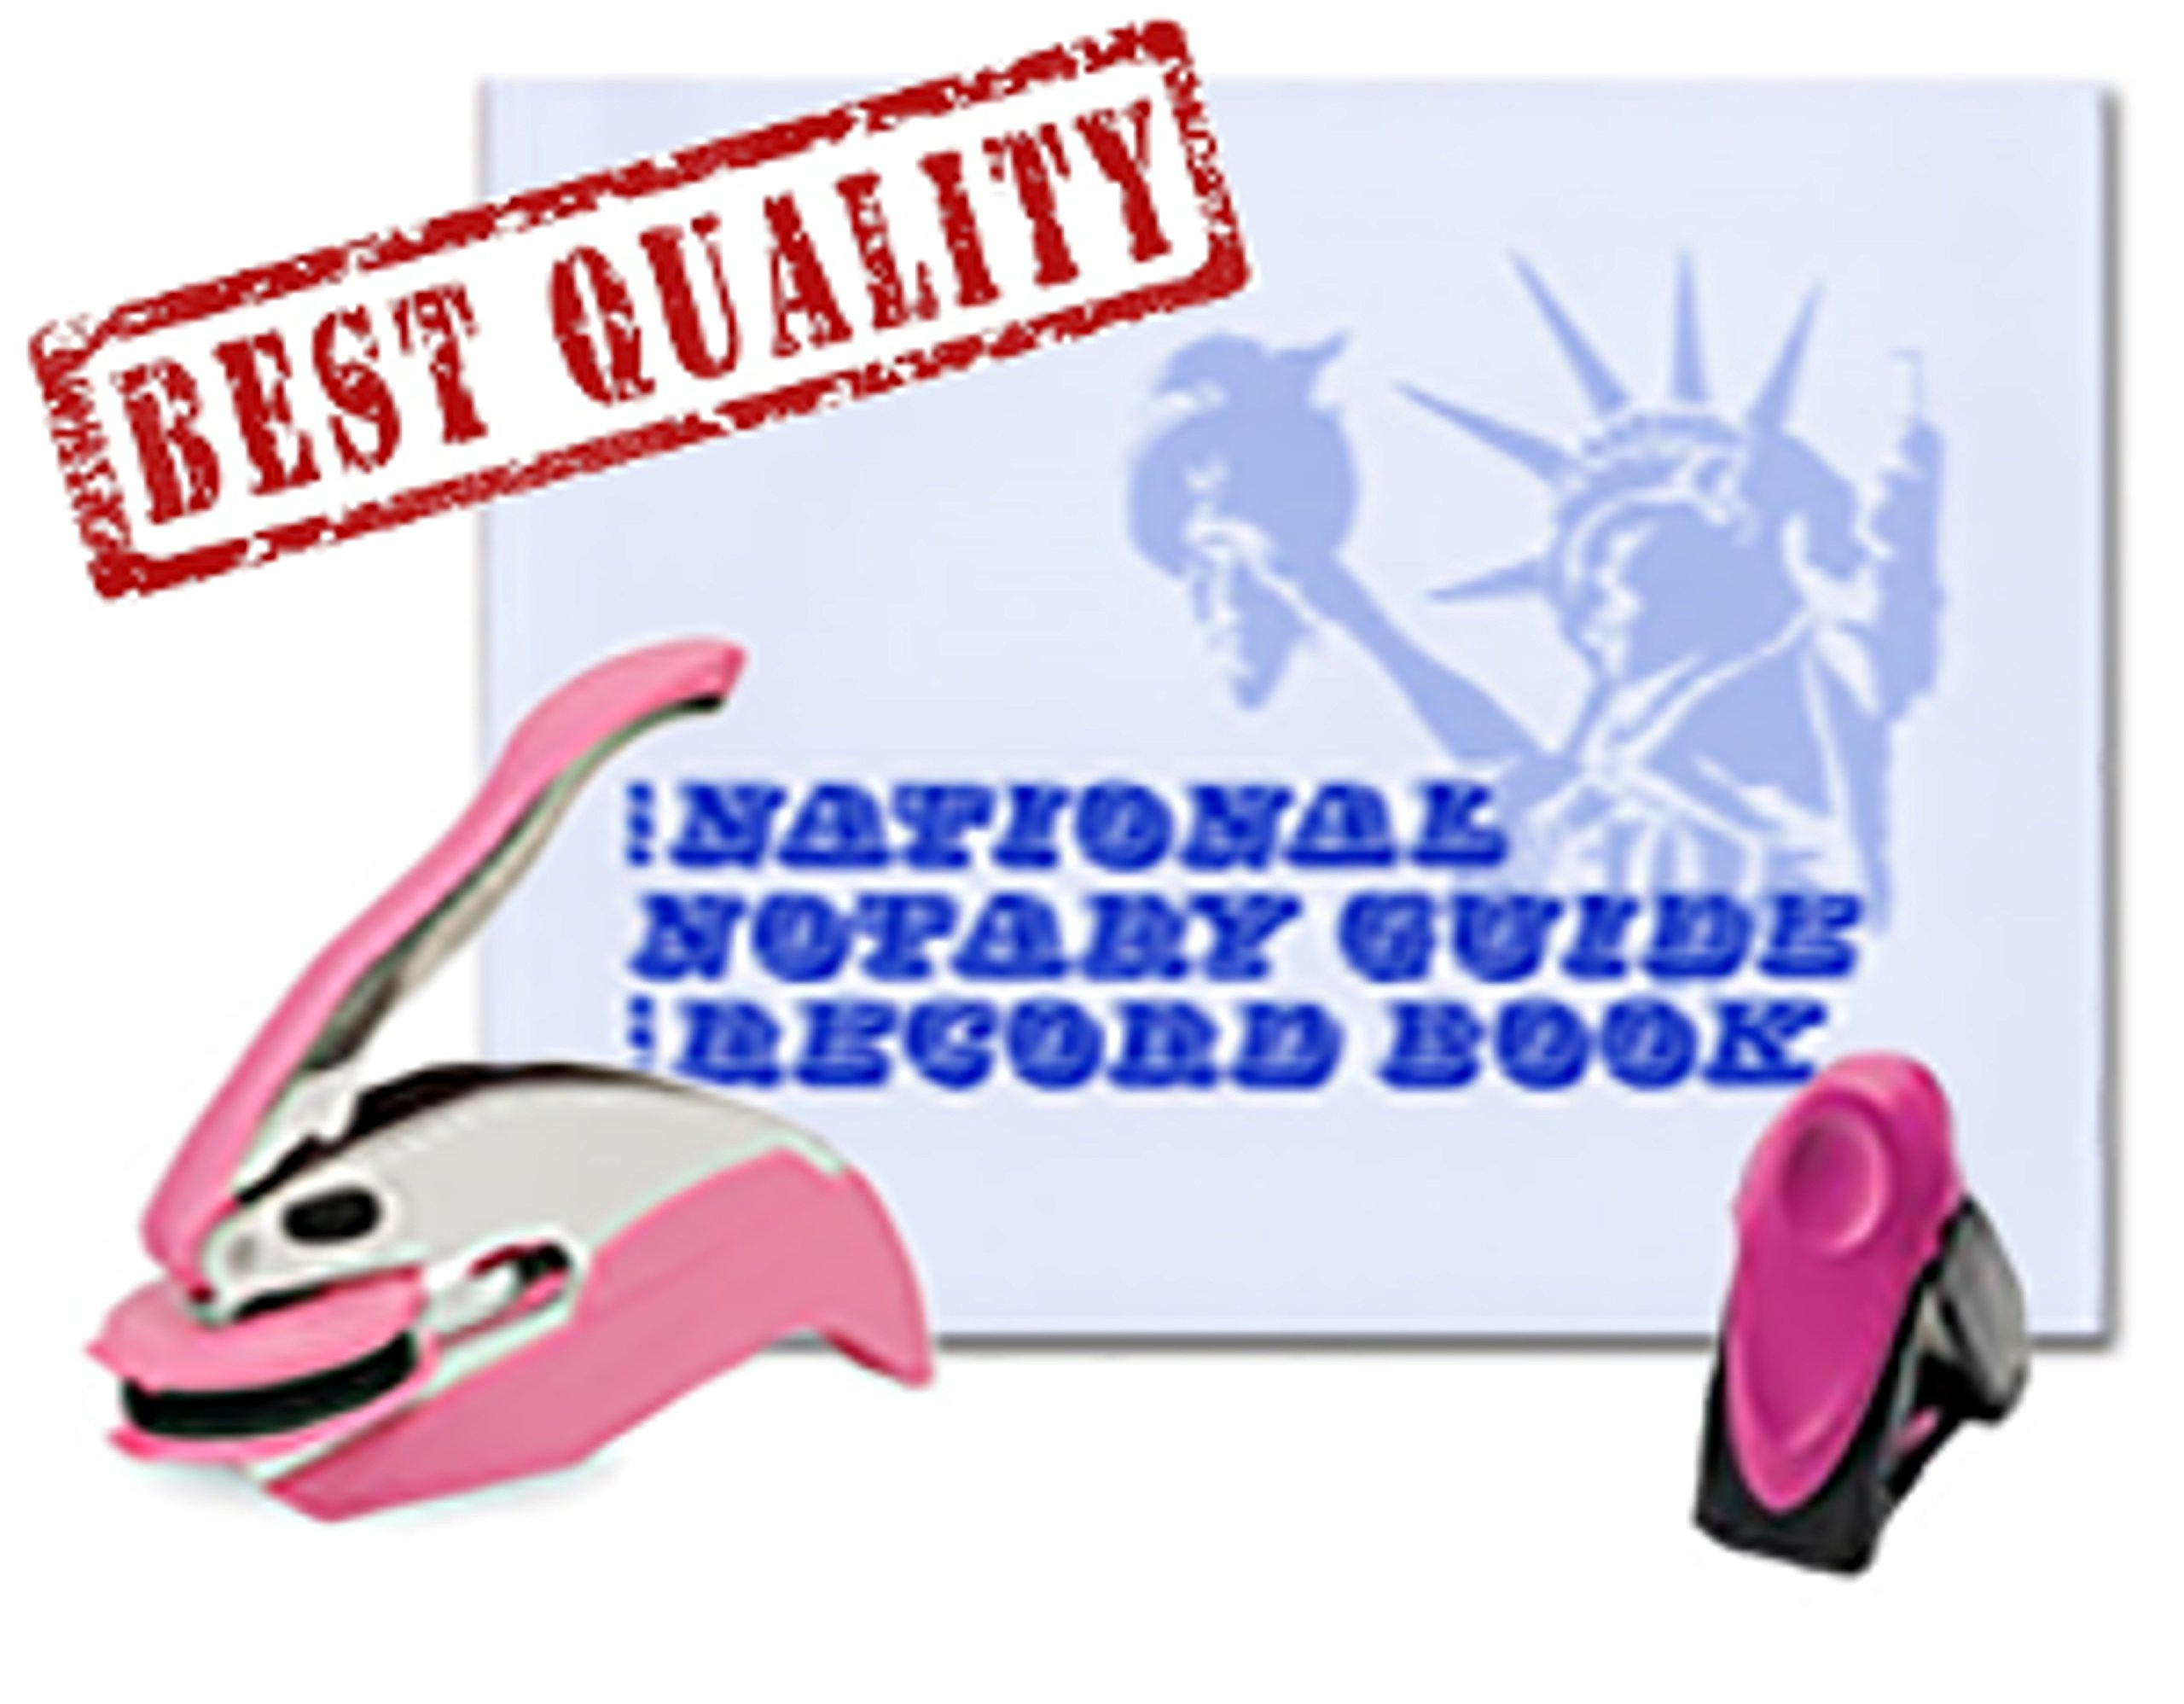 3 Product Breast Cancer Awareness Notary Supplies Value Package   Trodat Ideal Seal Embosser, Pink Mobile Printy 9412 Stamp, National Notary Guide Record Book   Maryland